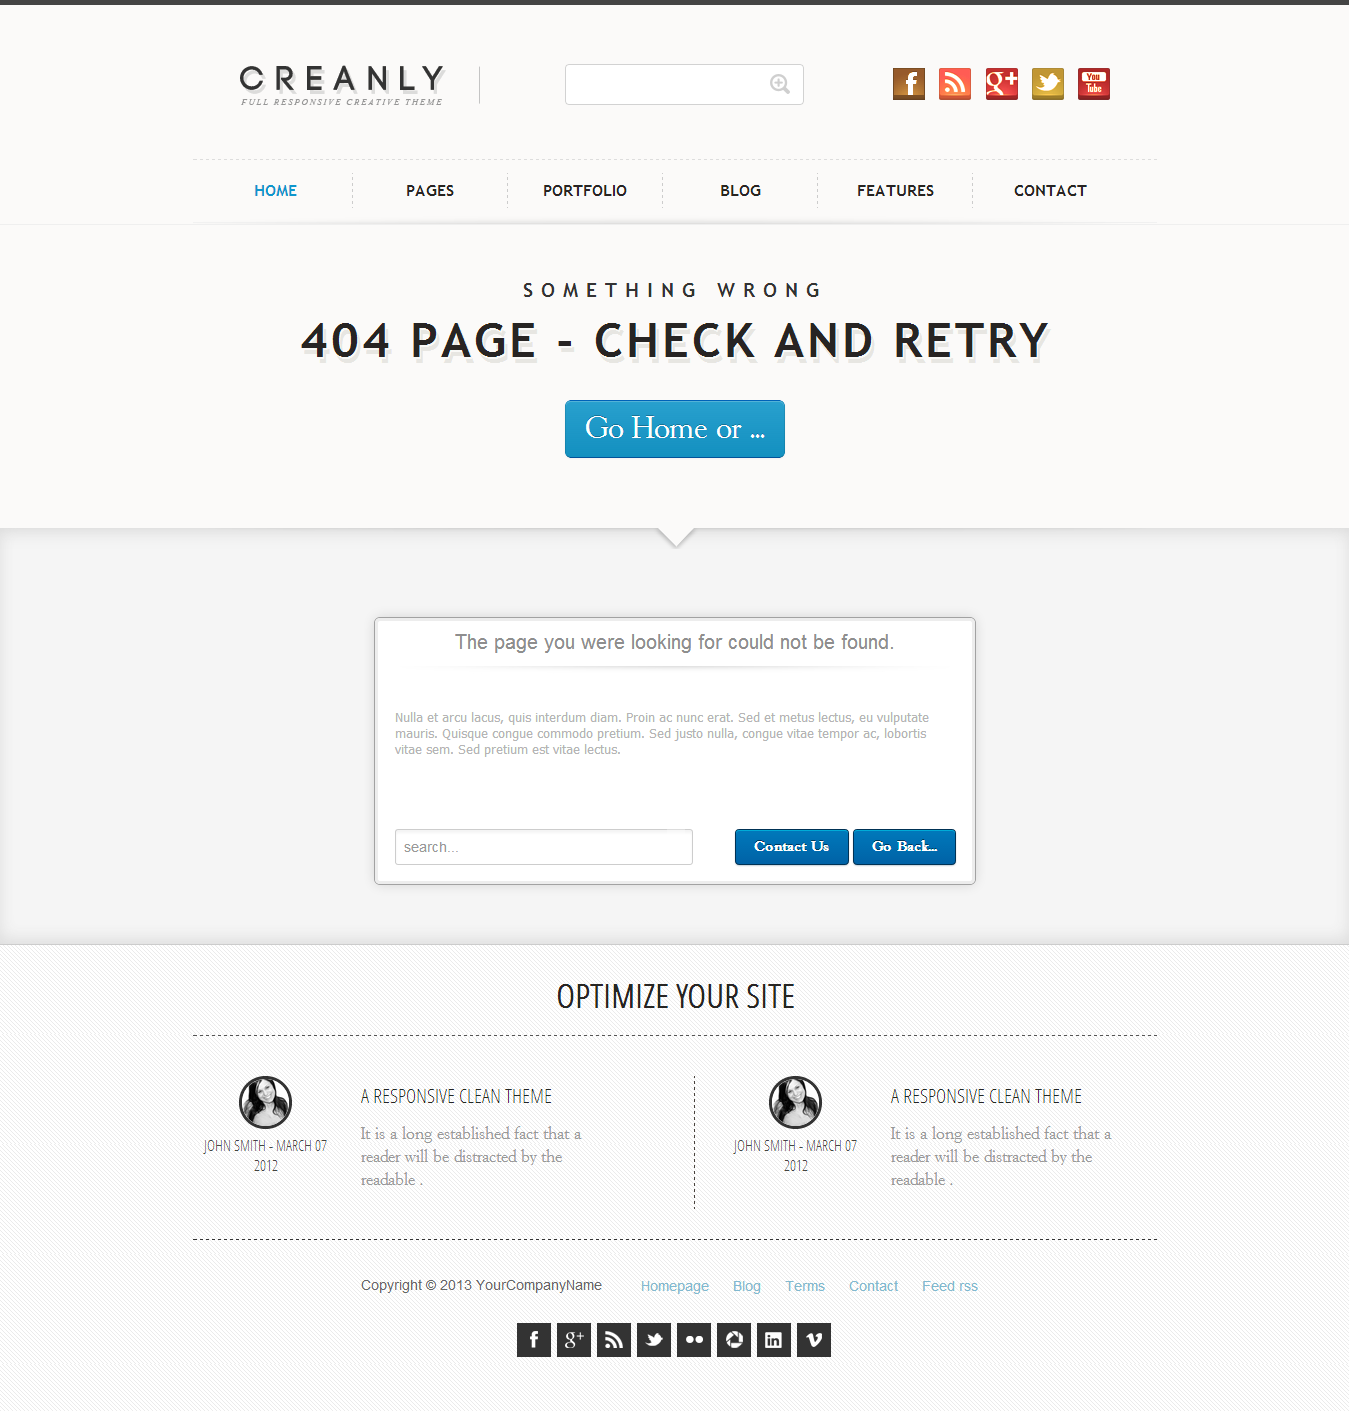 Creanly - Responsive clean theme design - This is a simple 404 error page wich include a descriptive and personalizable box, with search, contact and go-back option